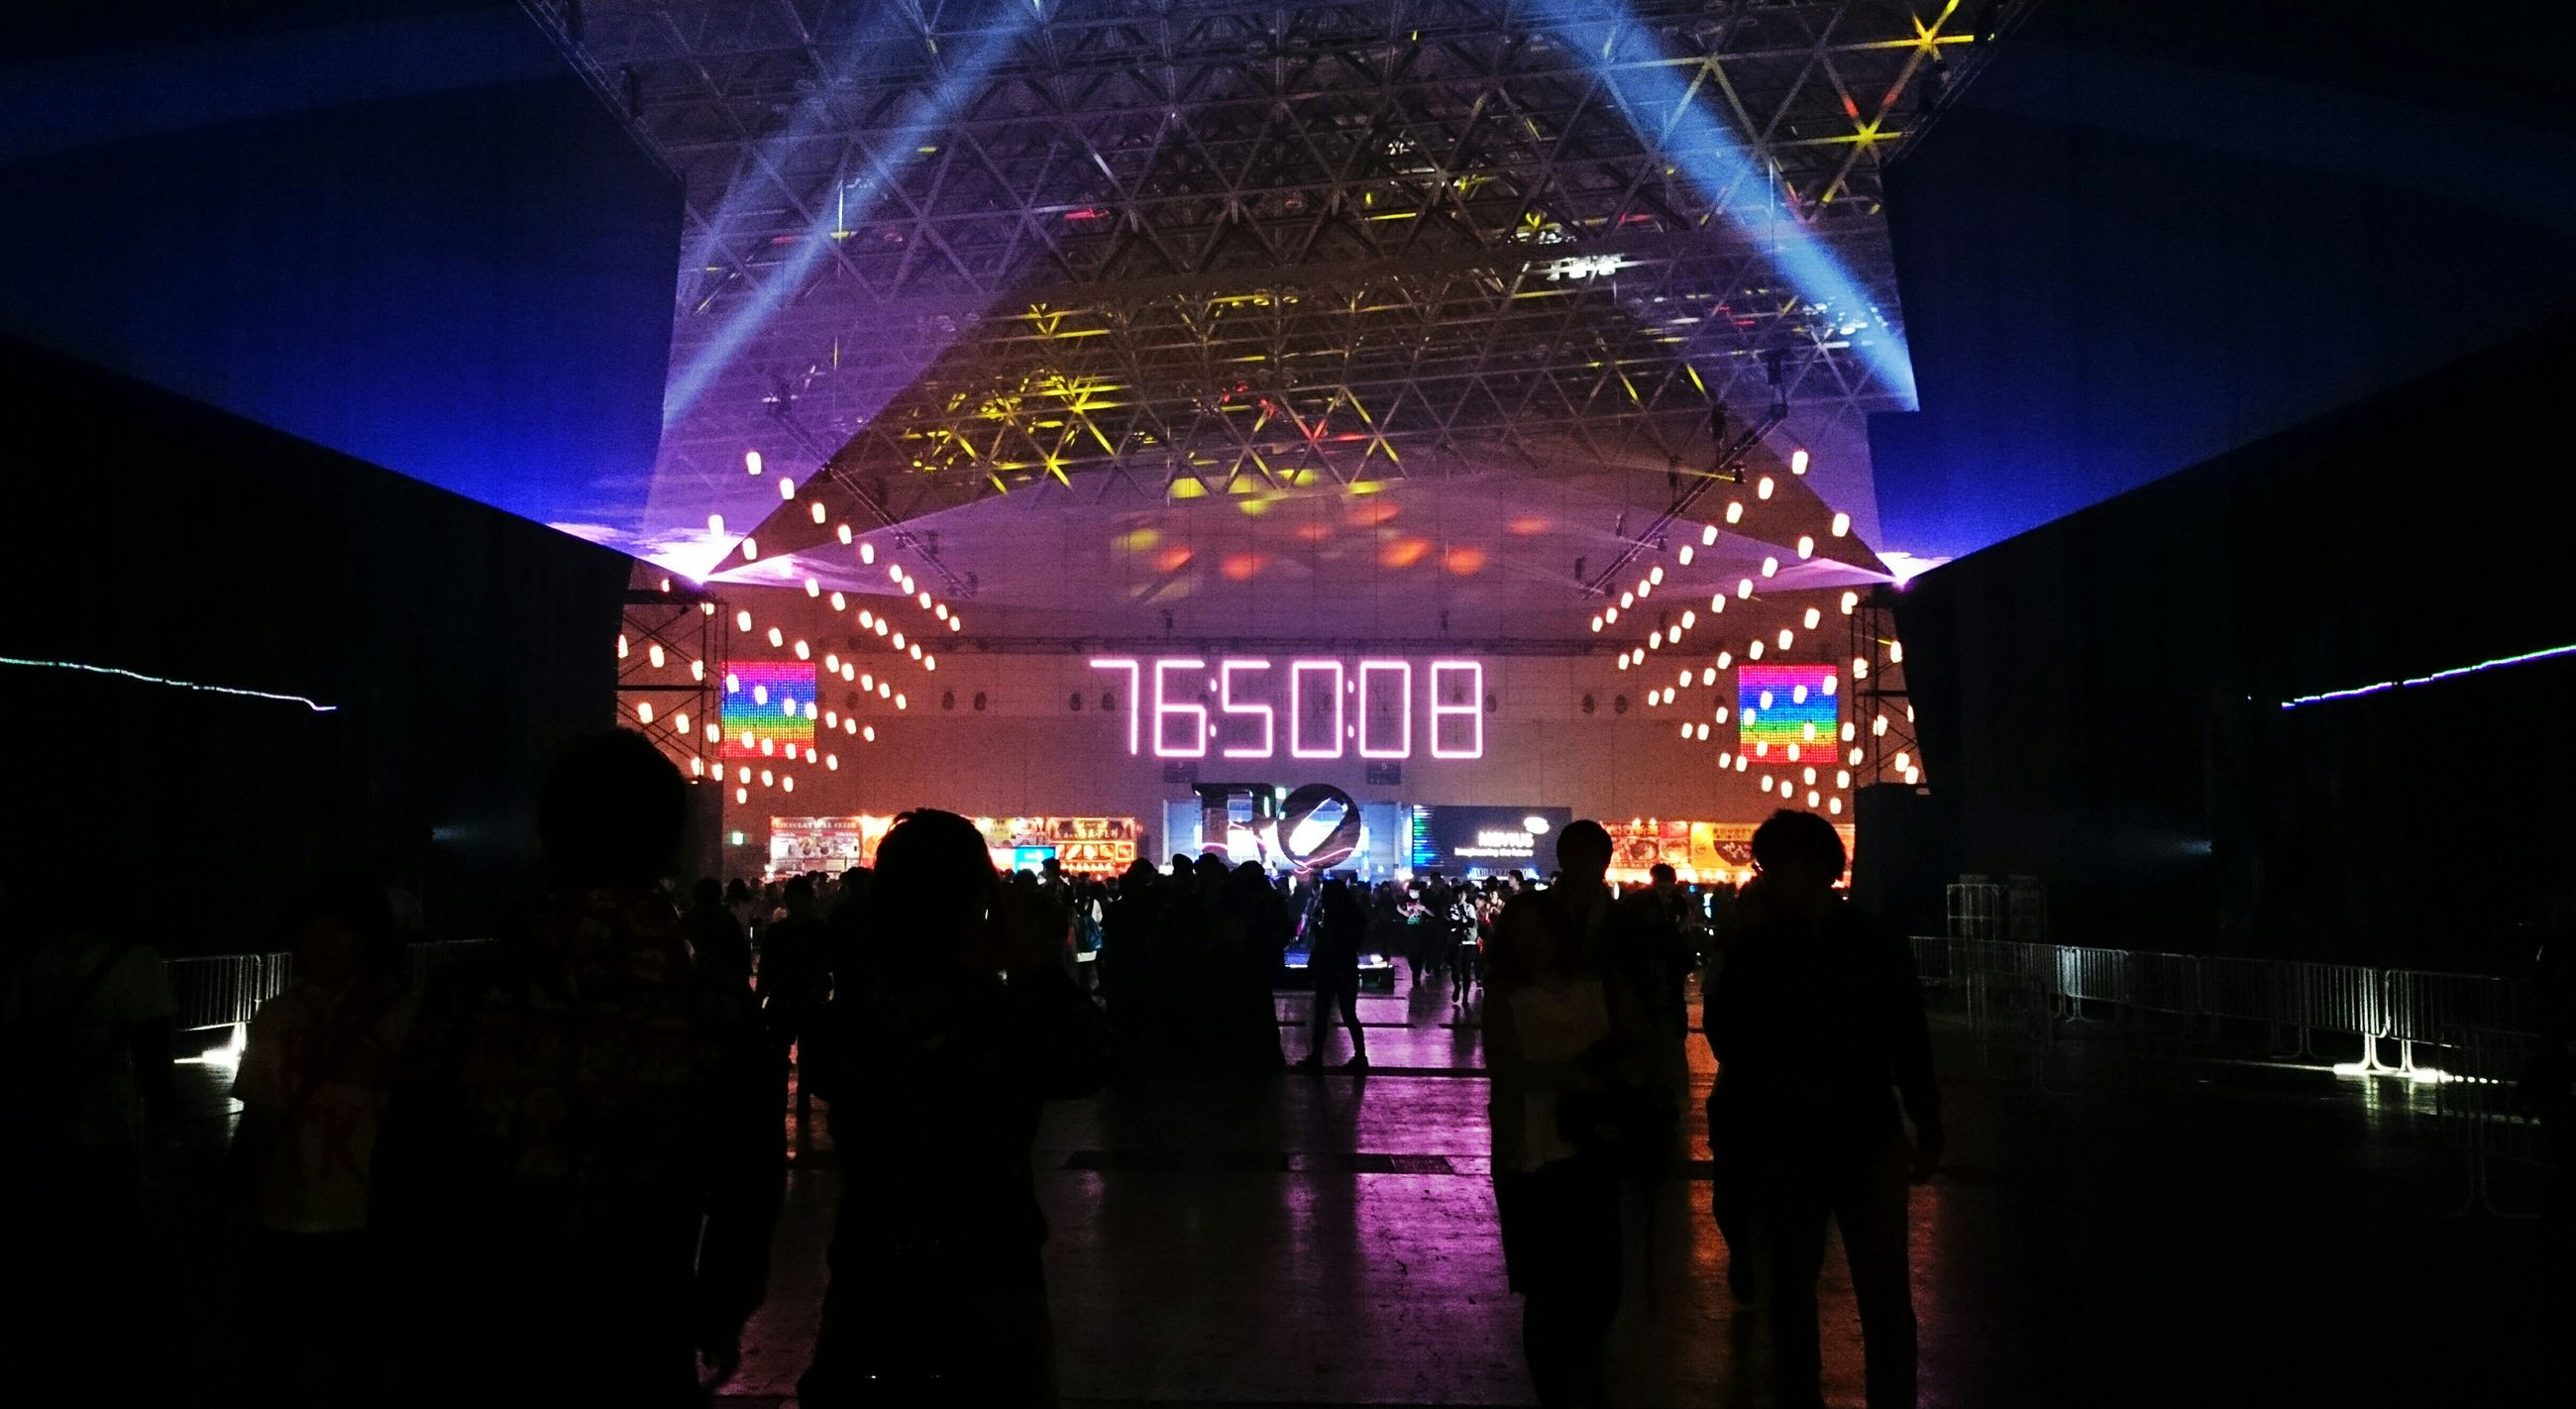 illuminated, night, large group of people, men, indoors, lifestyles, person, lighting equipment, built structure, leisure activity, architecture, text, crowd, city life, nightlife, arts culture and entertainment, light - natural phenomenon, city, communication